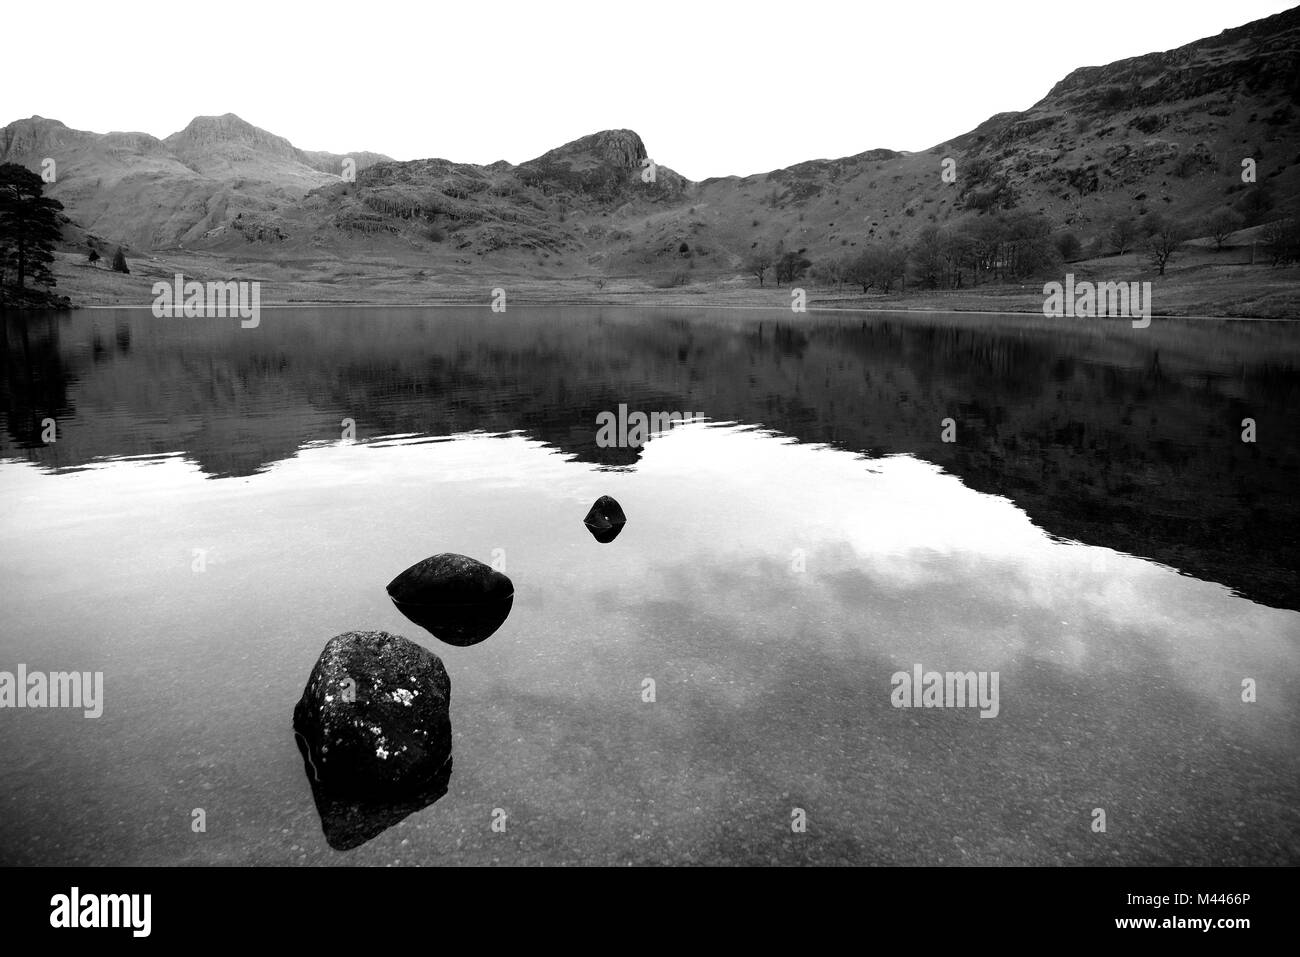 Lake district UK - Stock Image